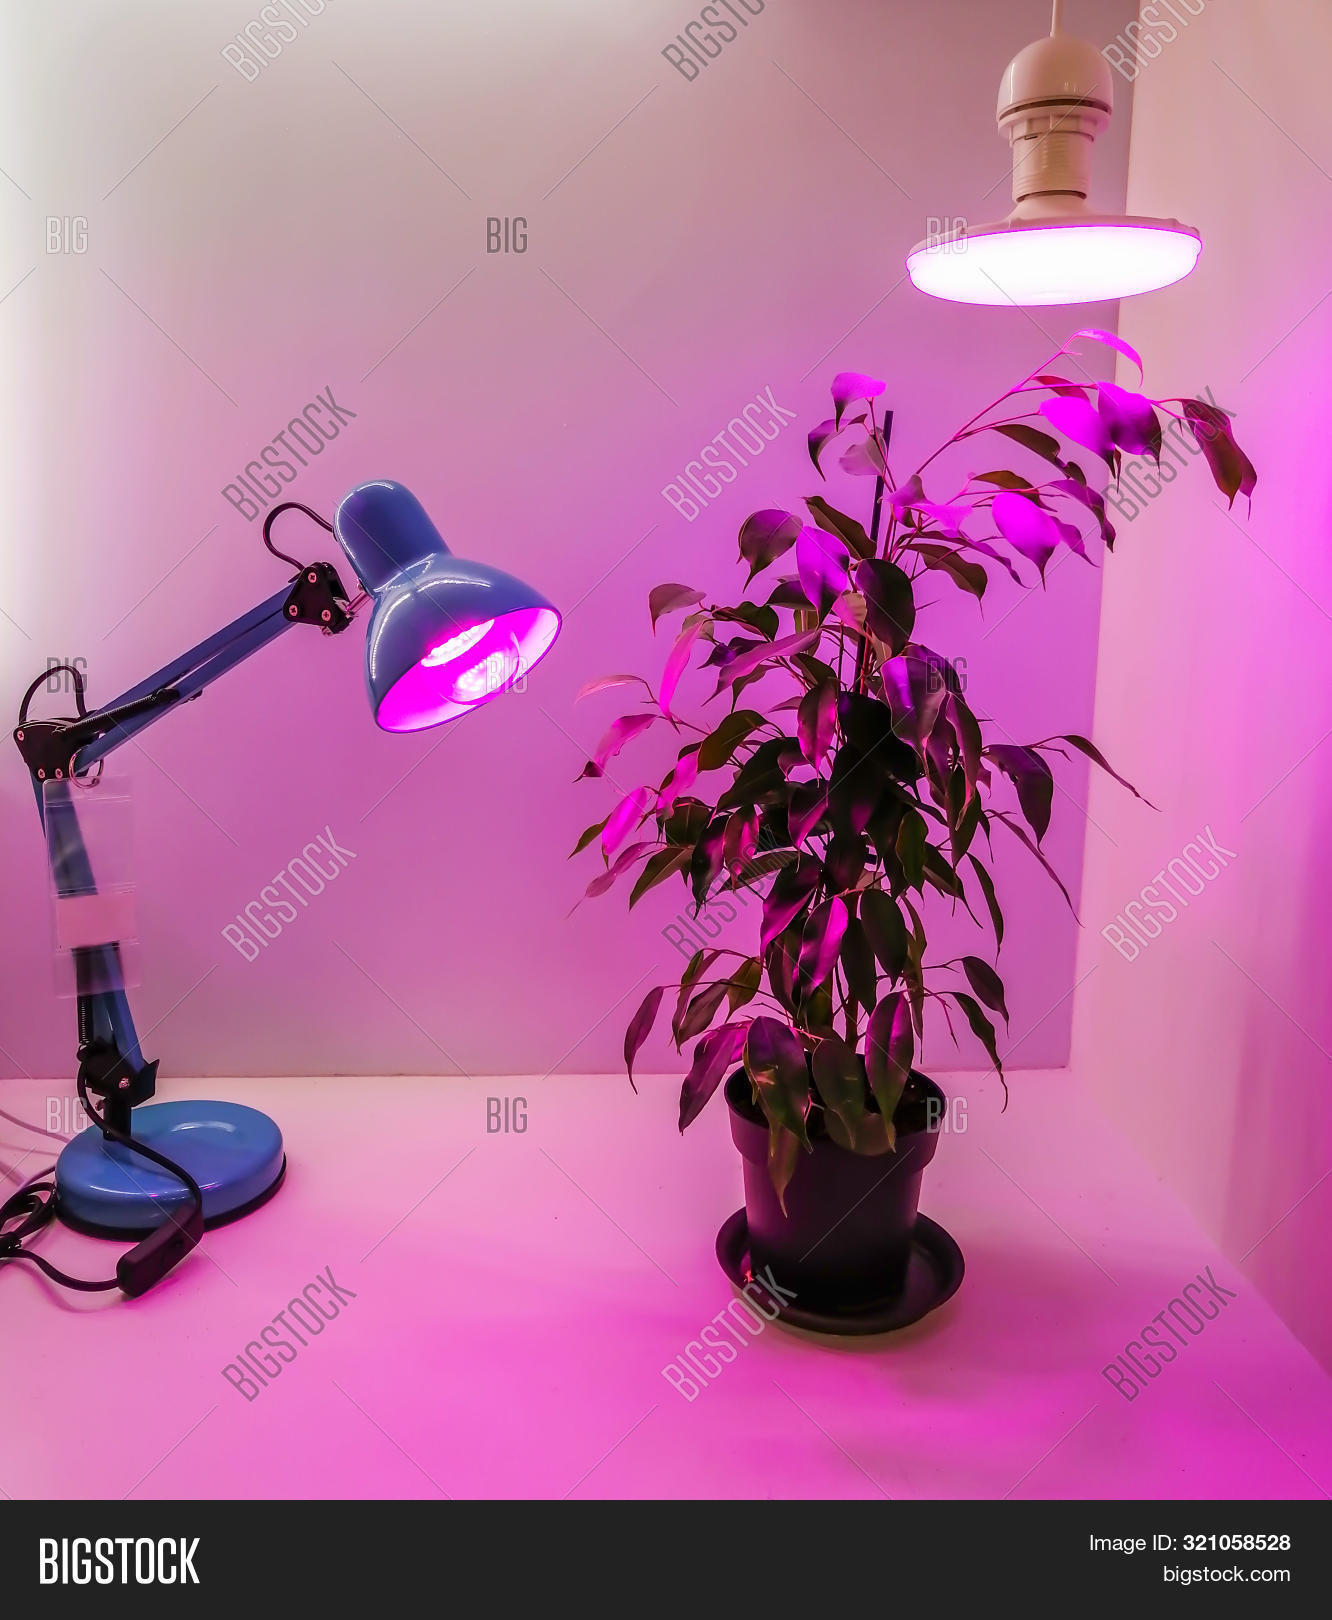 Growing Seedlings At Home And Pink Led Phyto-lighting Lamps For Plants. Growing Vegetables Using Led